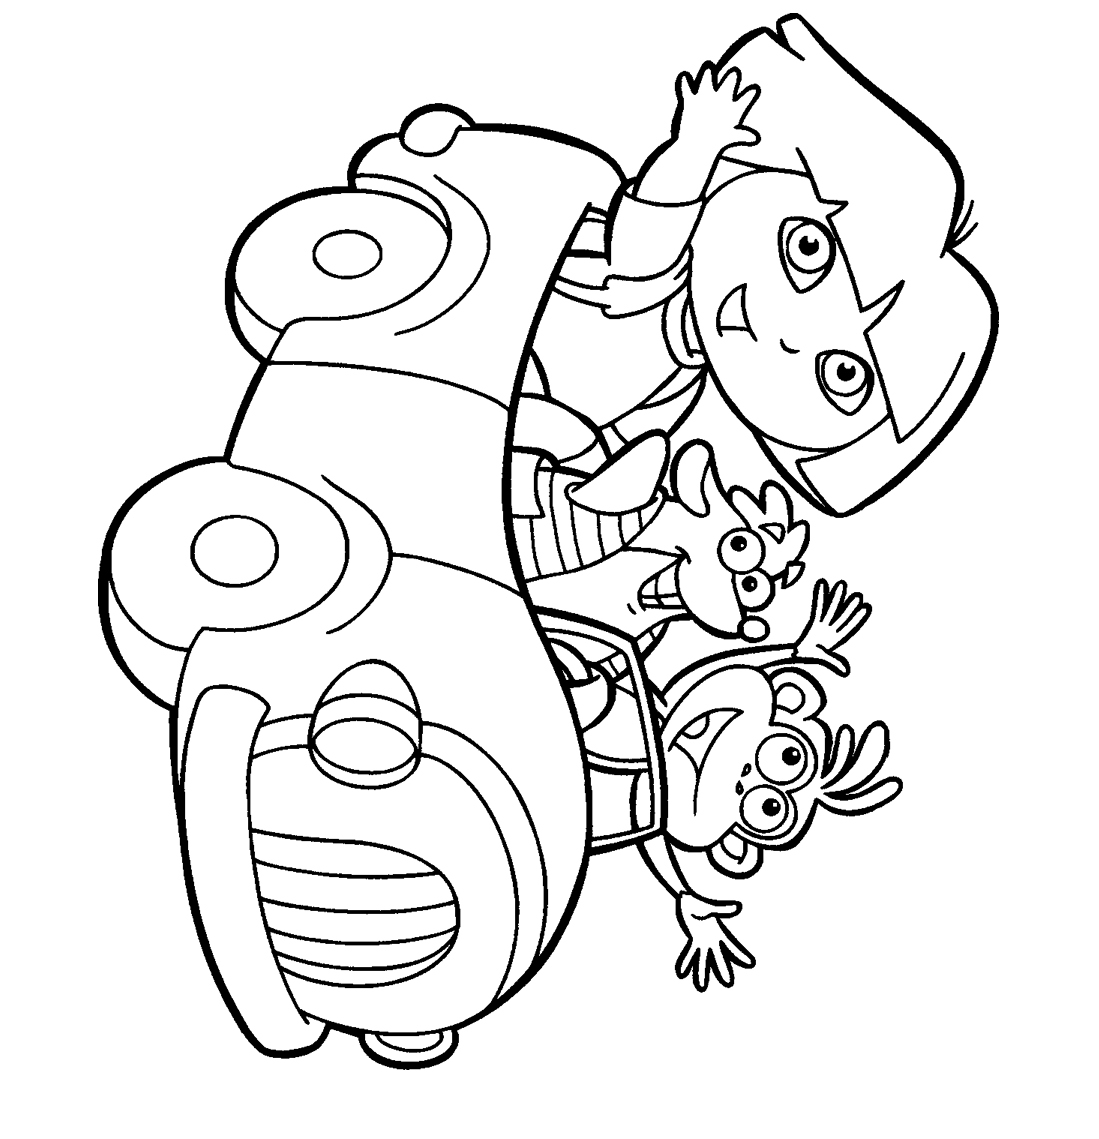 coloring picture of dora dora coloring lots of dora coloring pages and printables picture of dora coloring